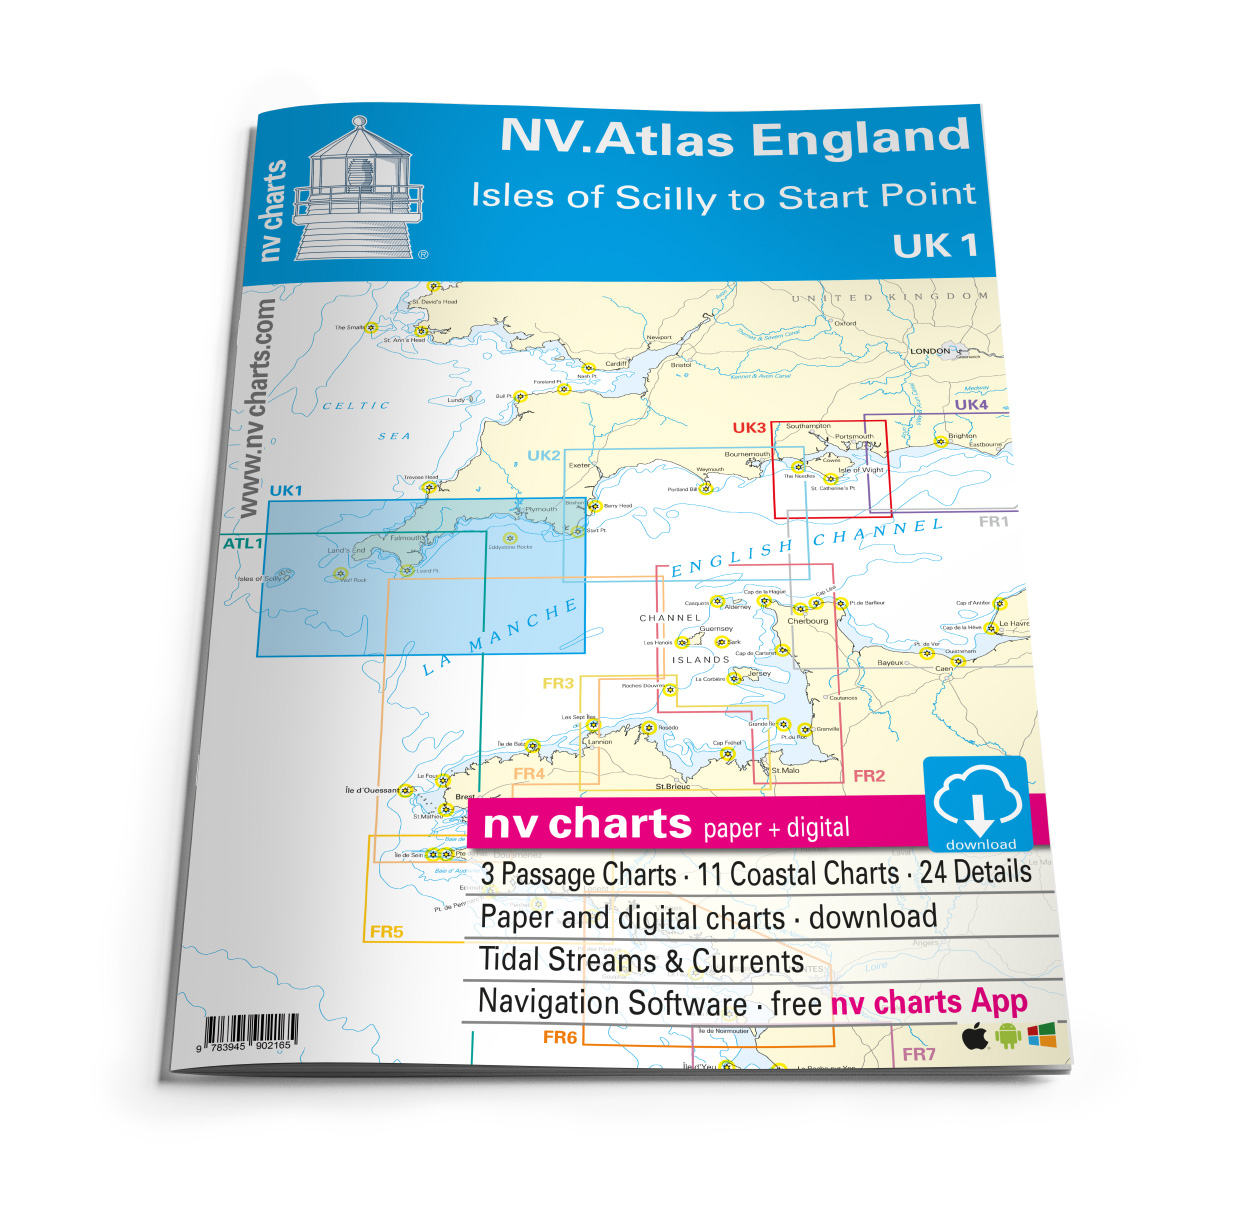 NV Atlas UK1 Scilly Isles to Start Point